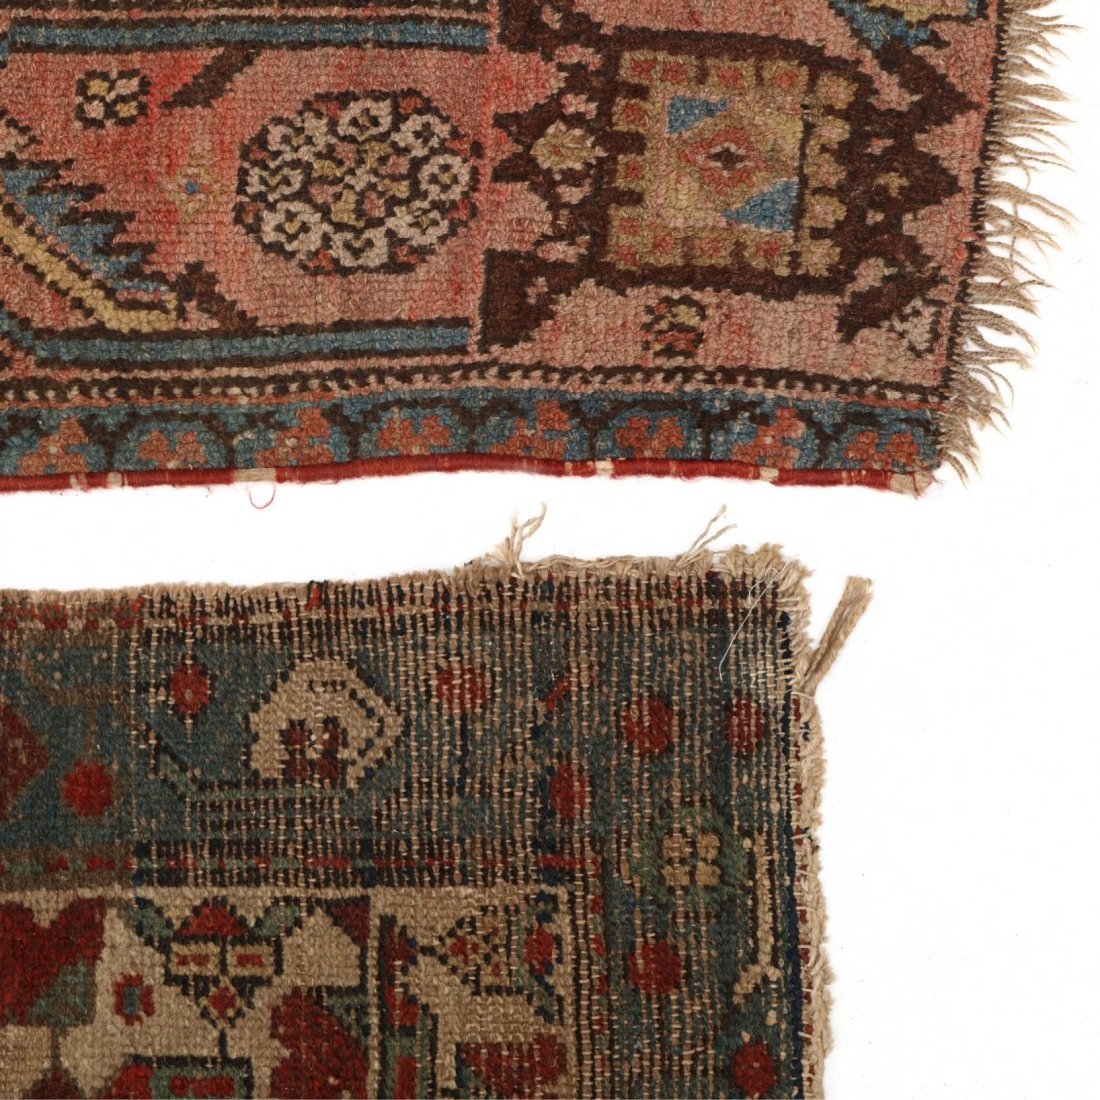 Two Persian Area Rugs - 2